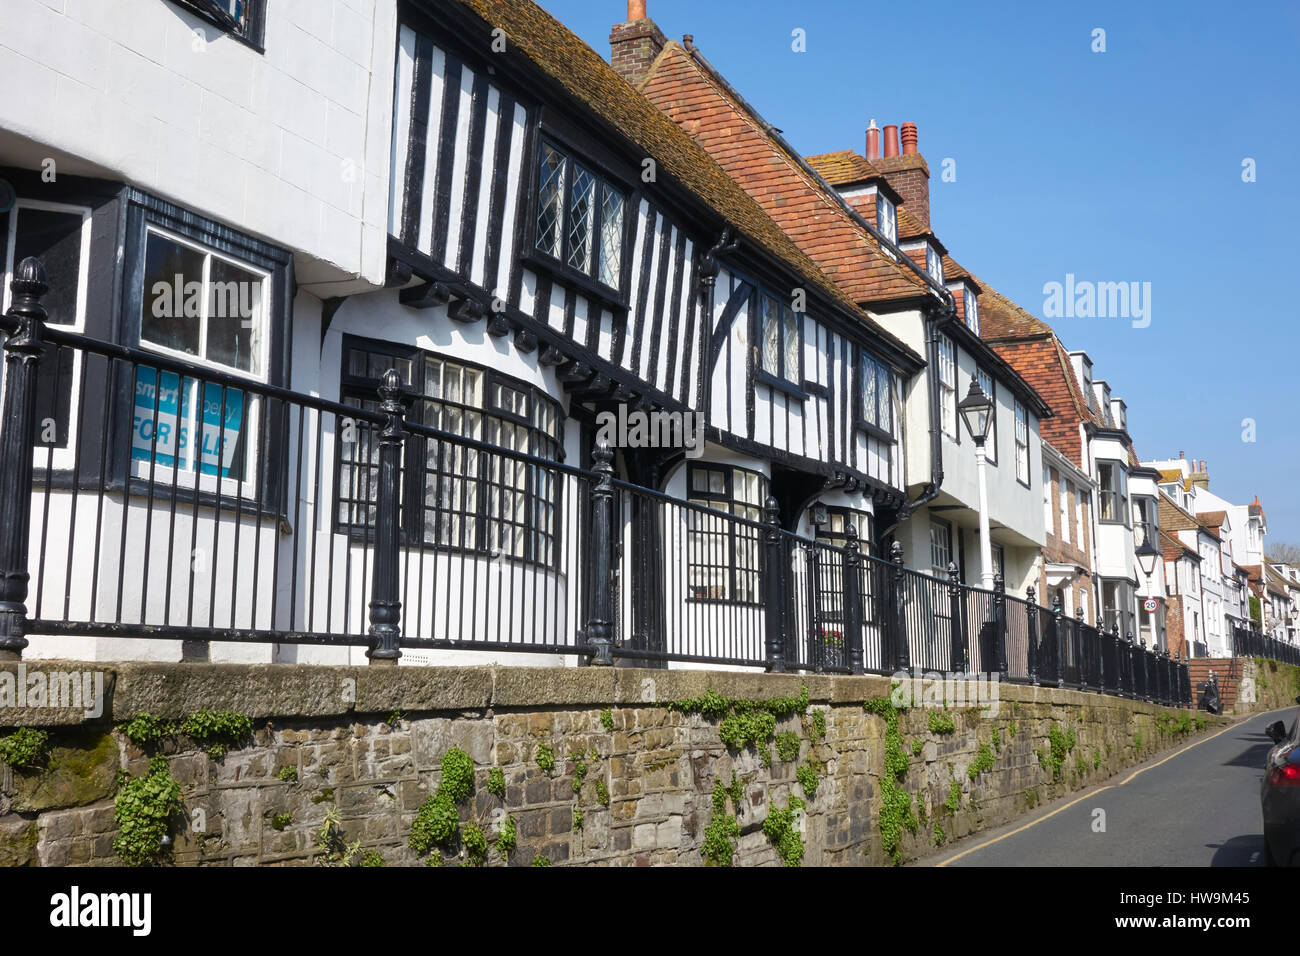 Hastings Old Town High Street, half timbered tudor houses on the raised pavement, East Sussex, England, Britain, - Stock Image